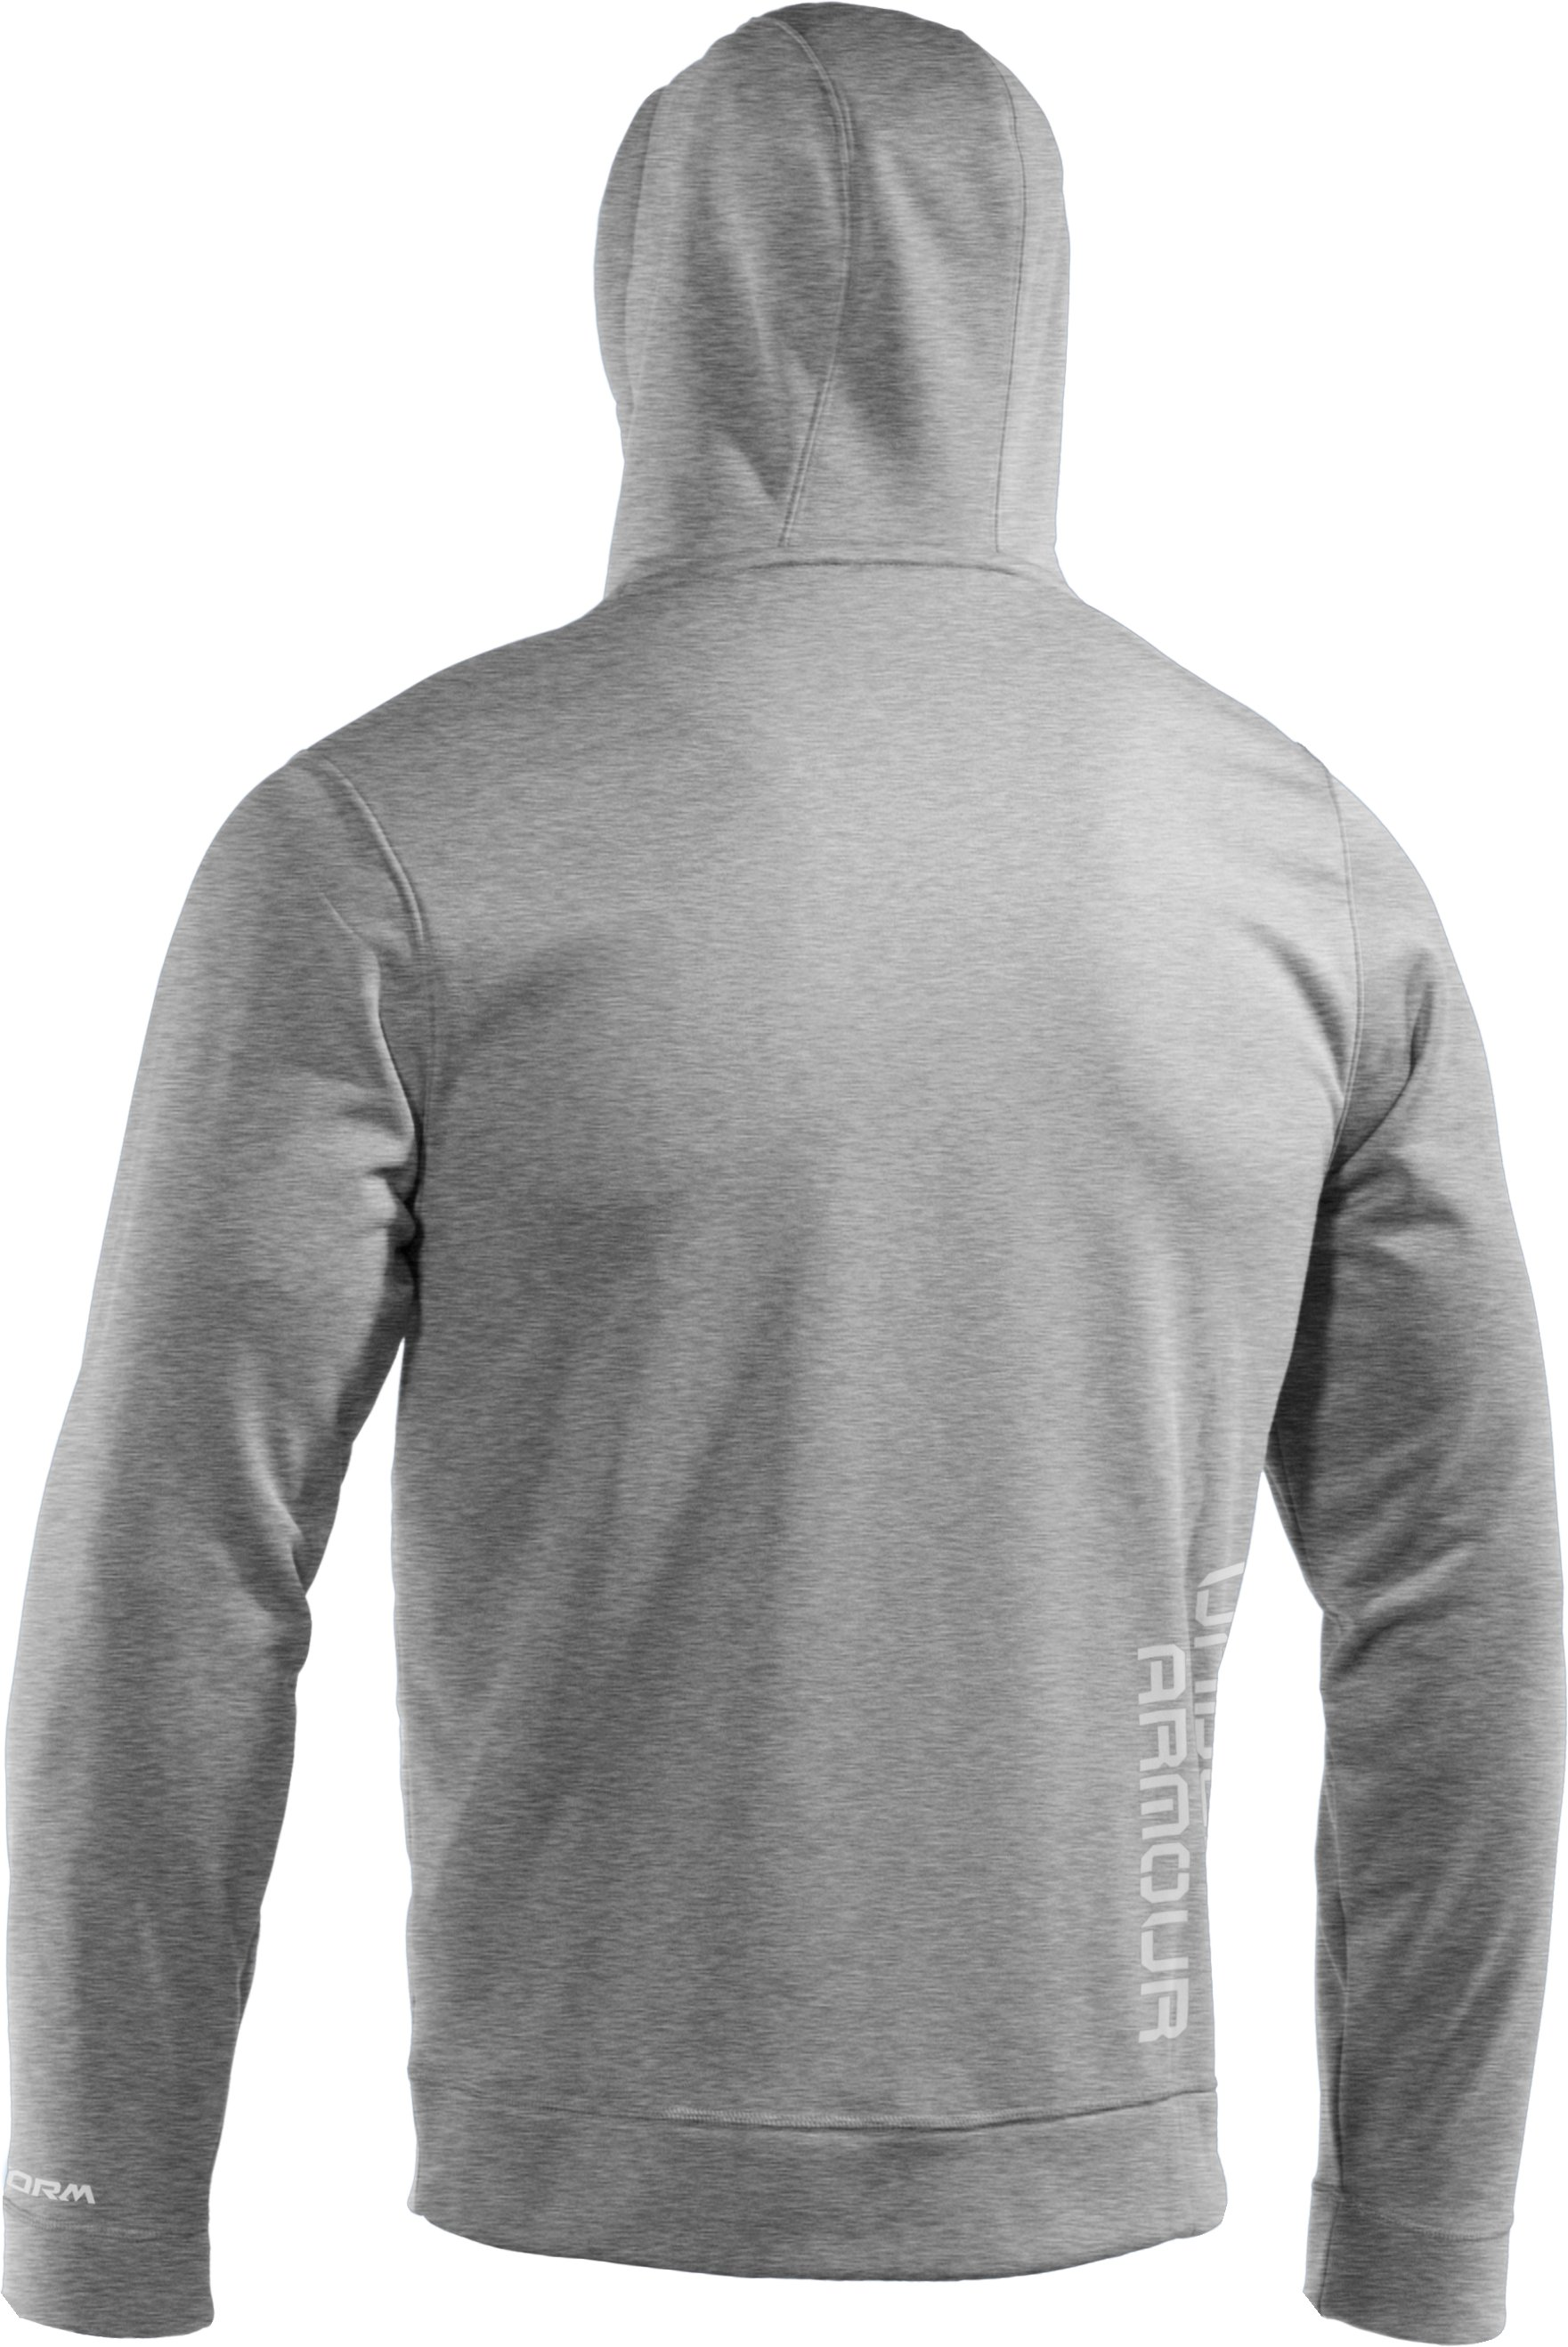 Men's Armour® Fleece Storm Big Logo Hoodie, True Gray Heather, undefined